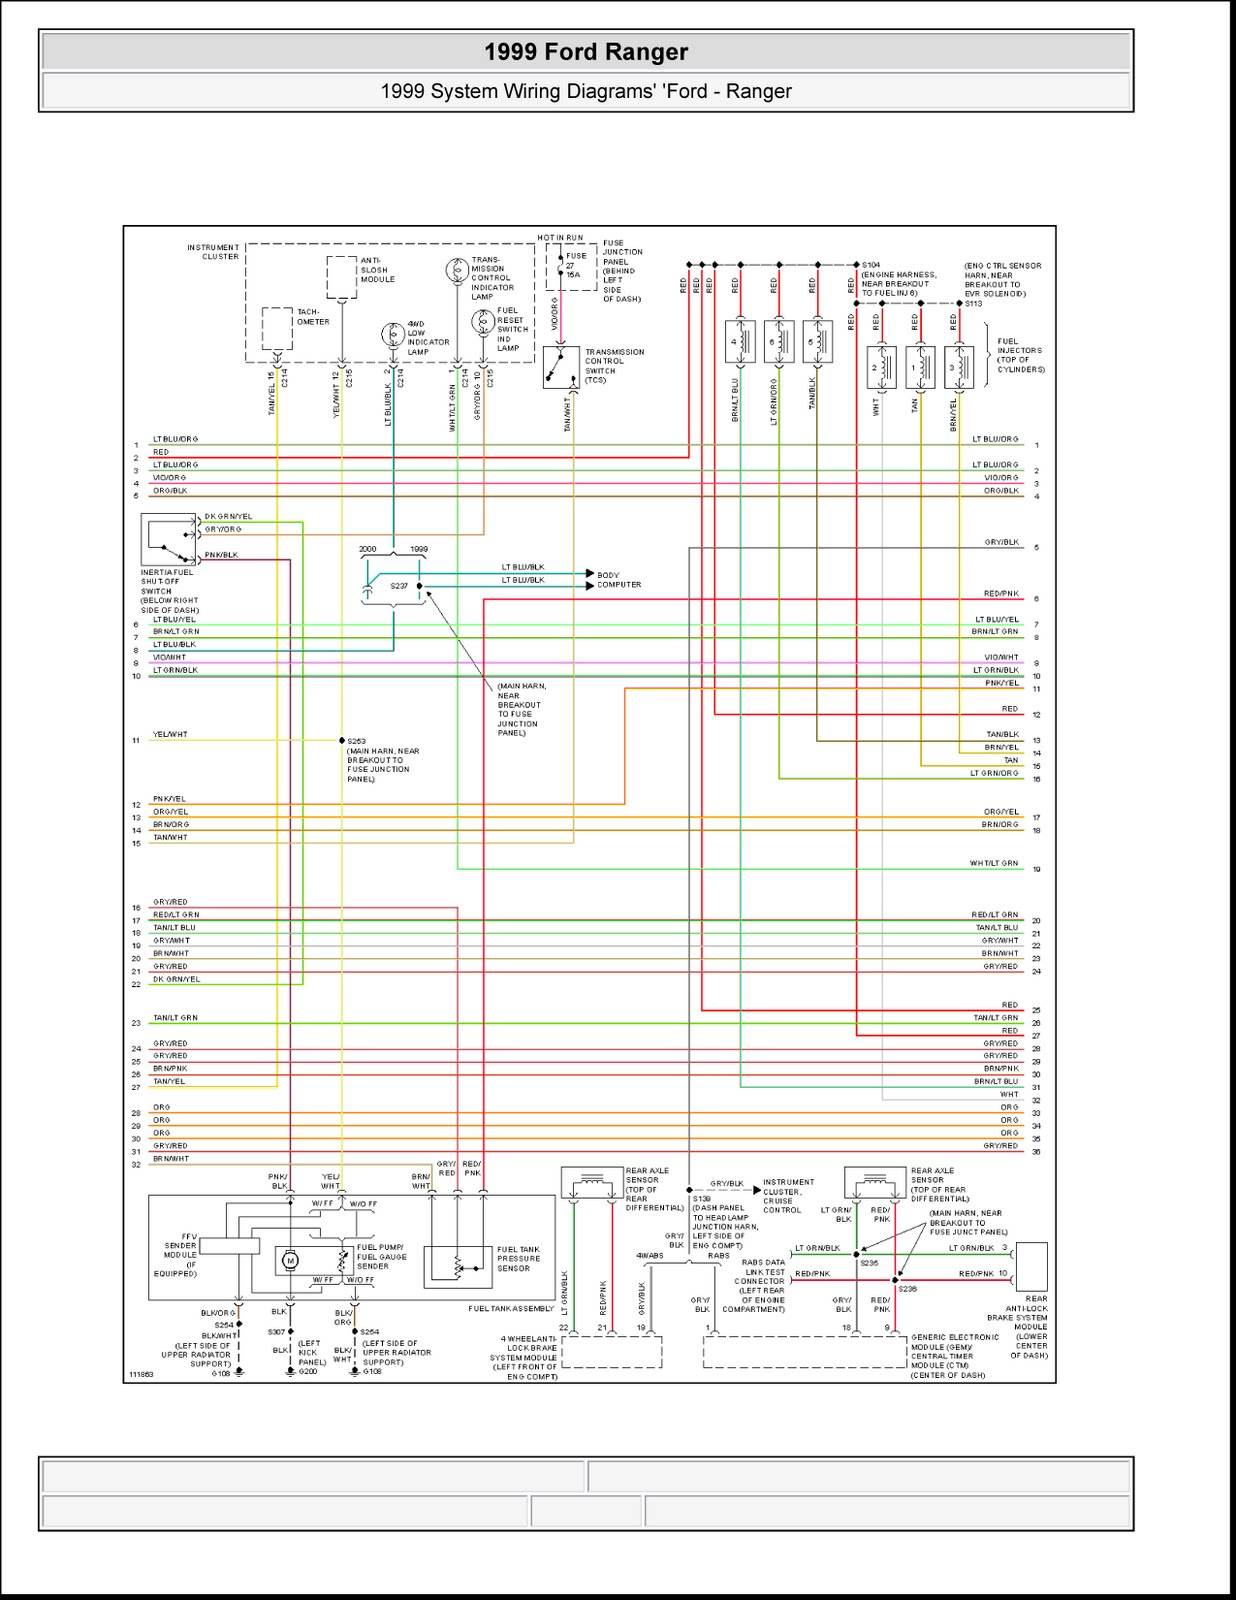 0003 1999 ford ranger system wiring diagrams 4 images wiring 1999 ford ranger ignition wiring diagram at soozxer.org